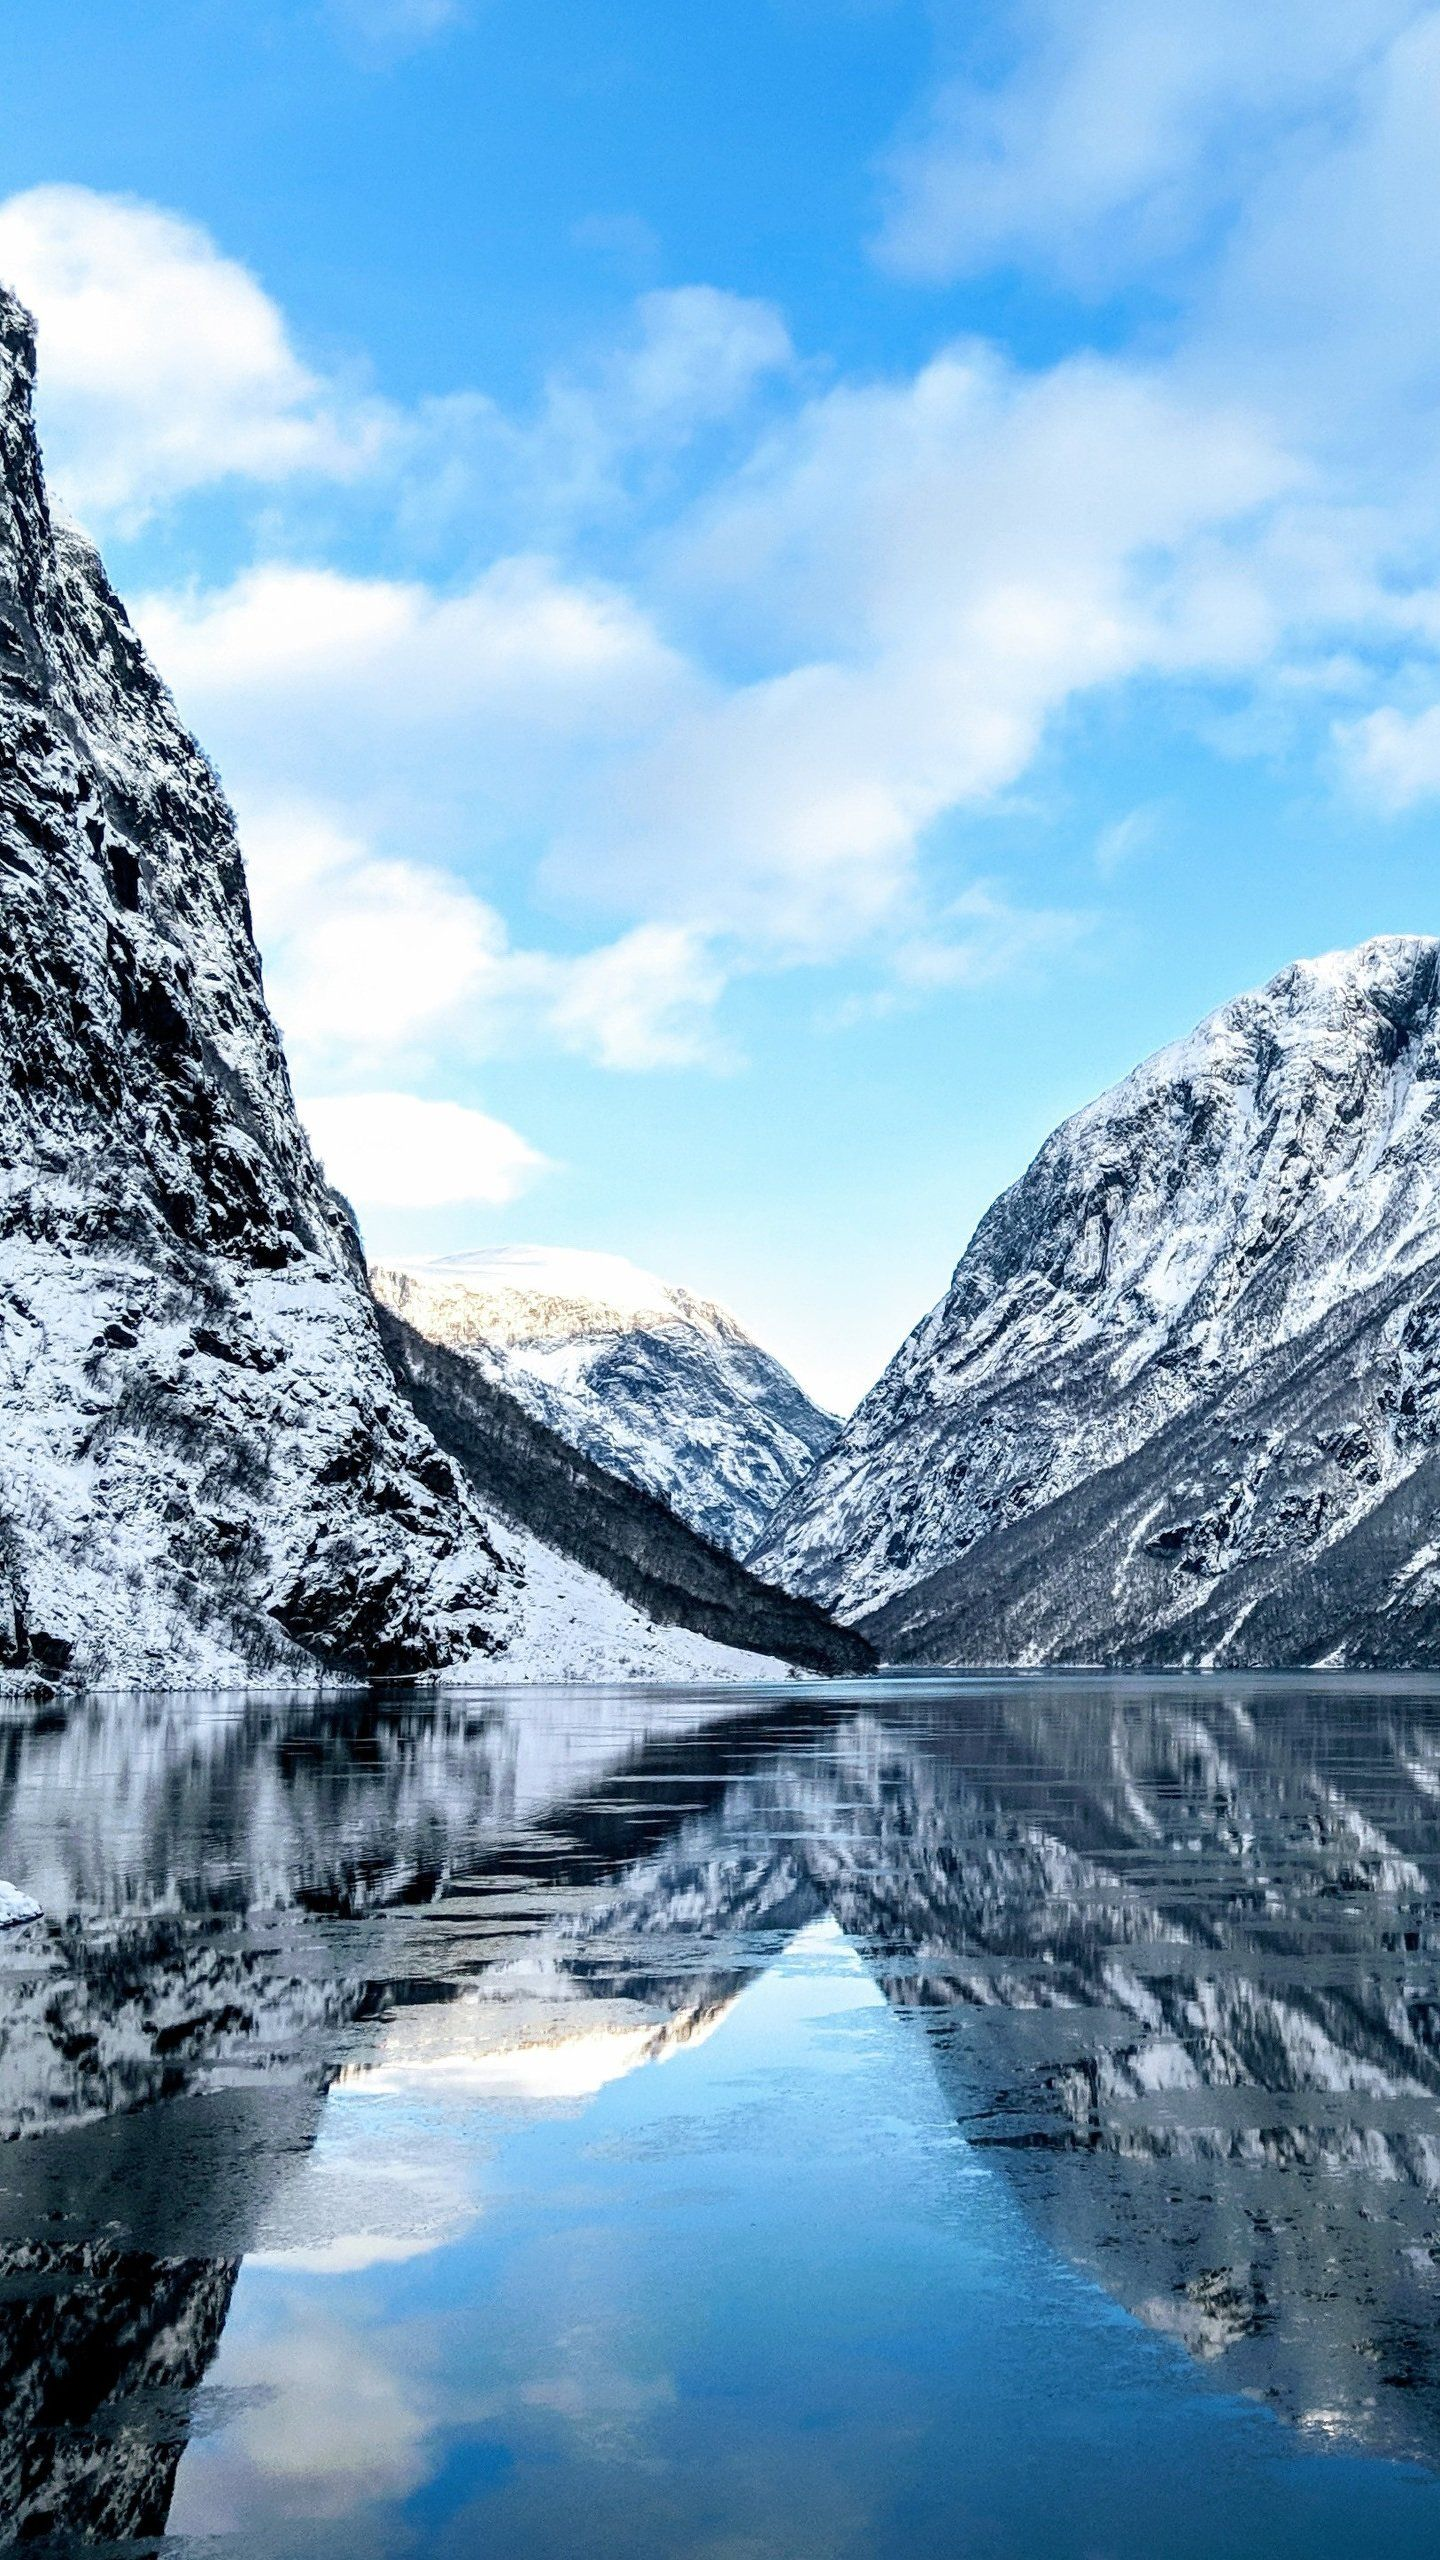 Norway Rivers 4k Hd Nature Wallpapers Photos And Pictures Nature Wallpaper Hd Nature Wallpapers Nature